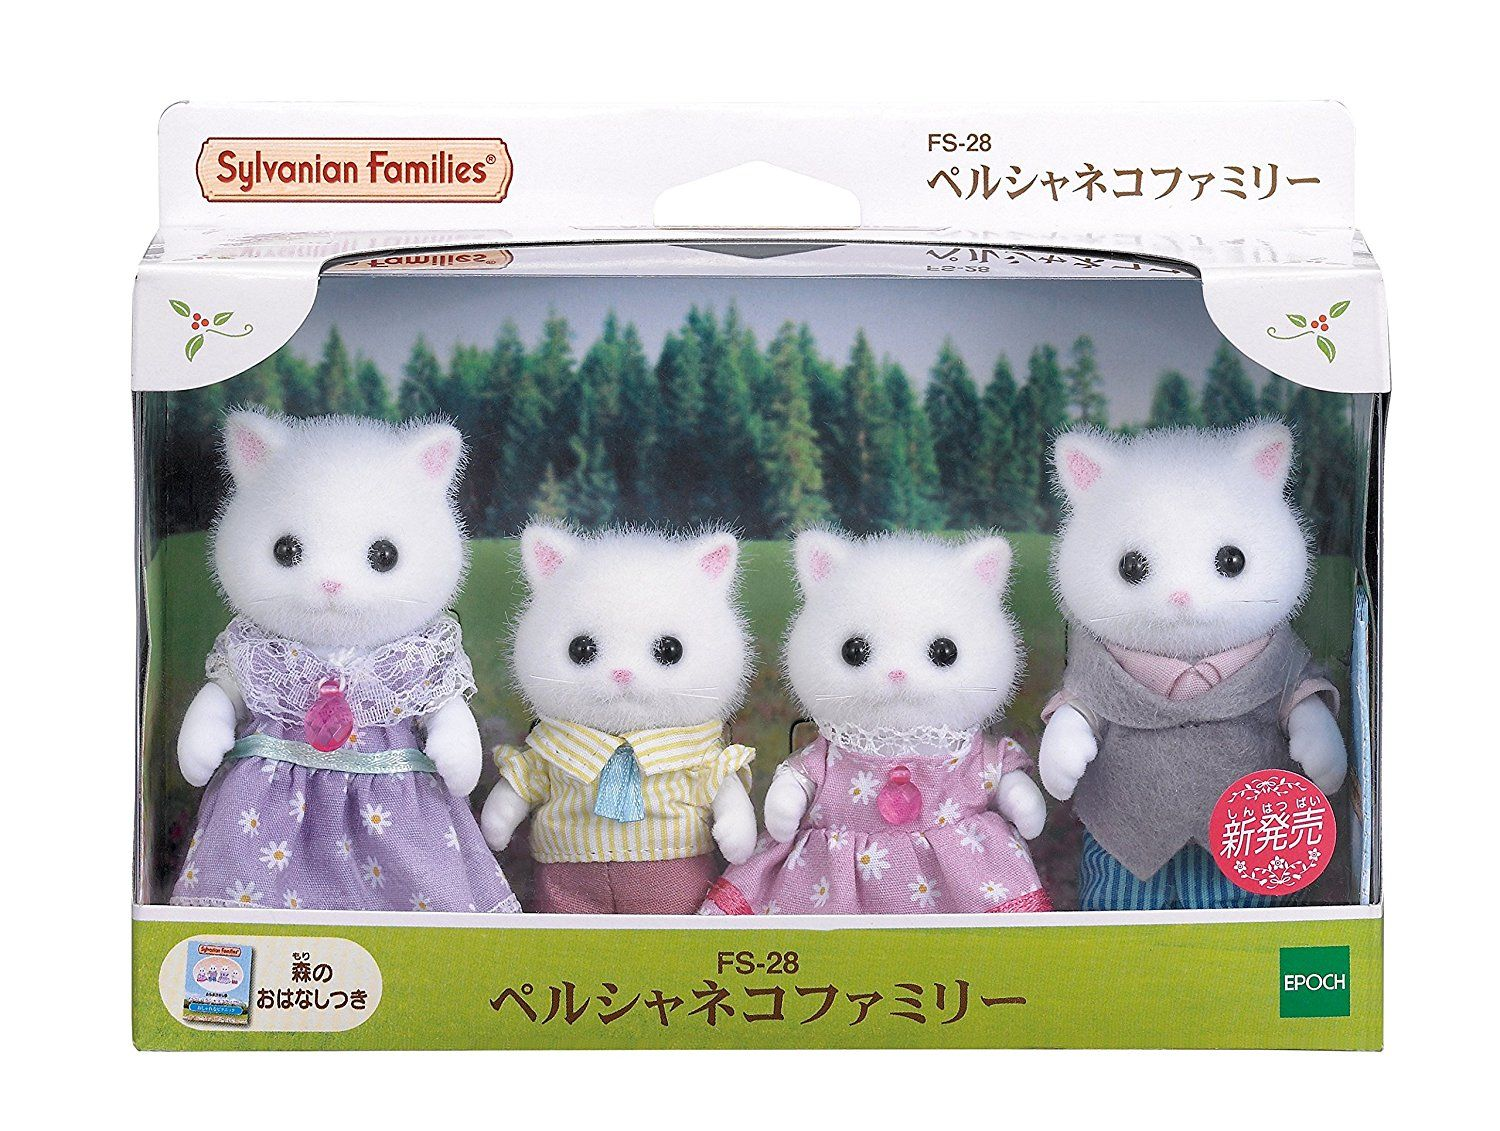 Sylvanian Families FS-28 Persian Cat Family Doll Set Calico Critters